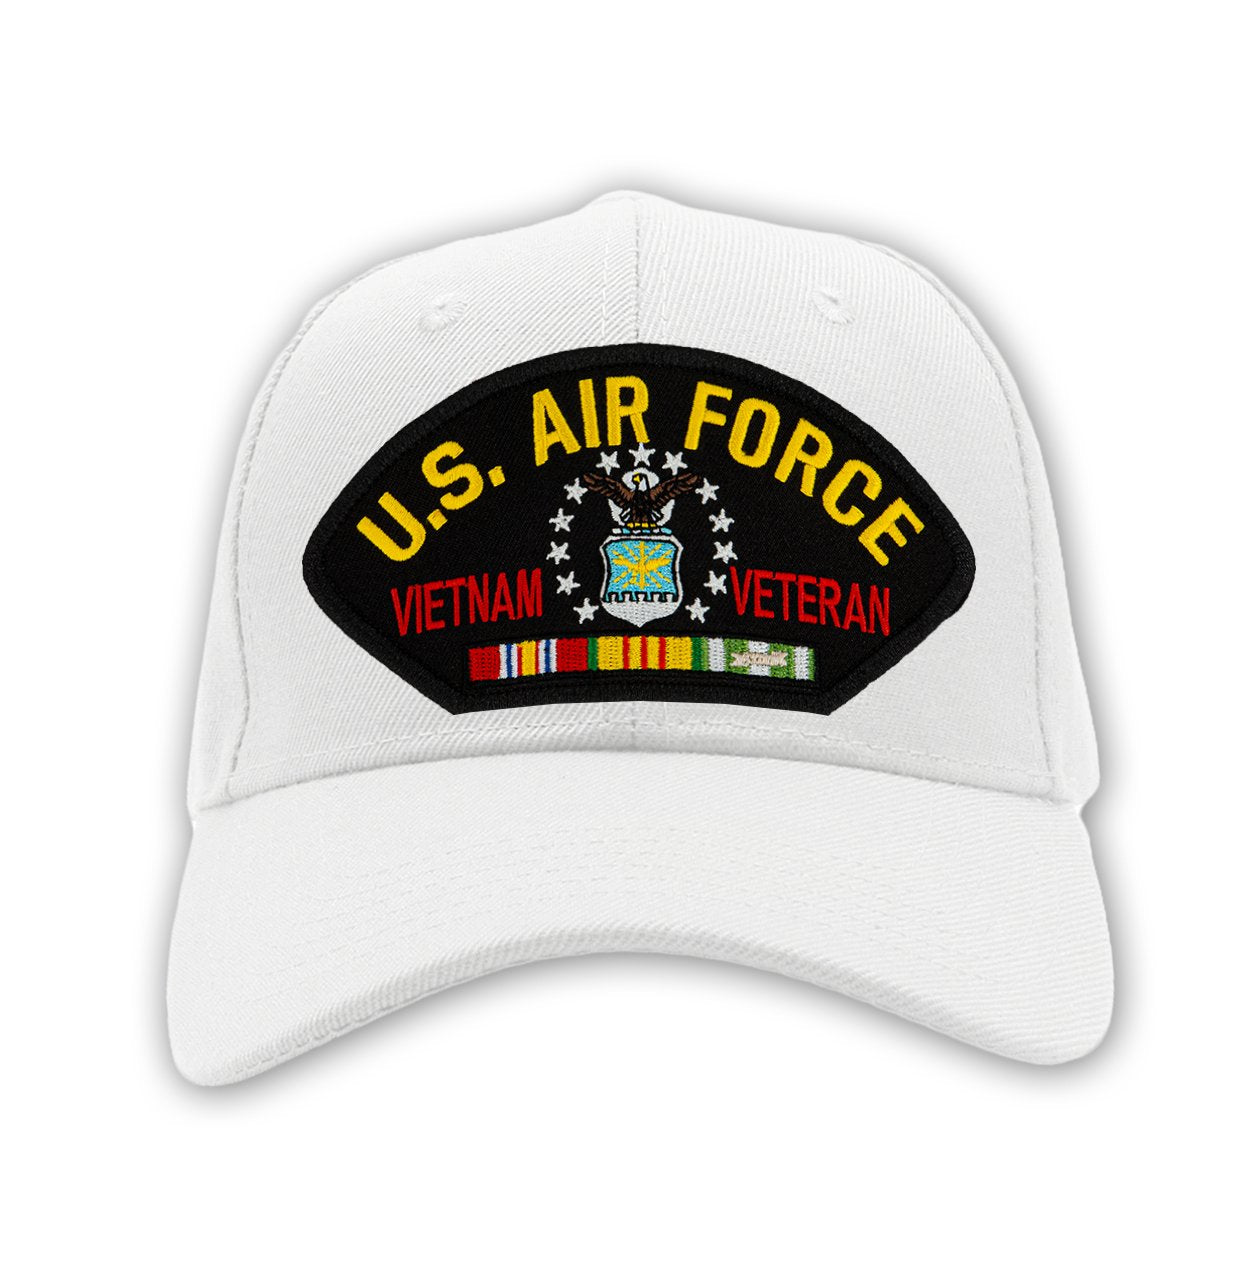 US Air Force - Vietnam Veteran Hat - Multiple Colors Available